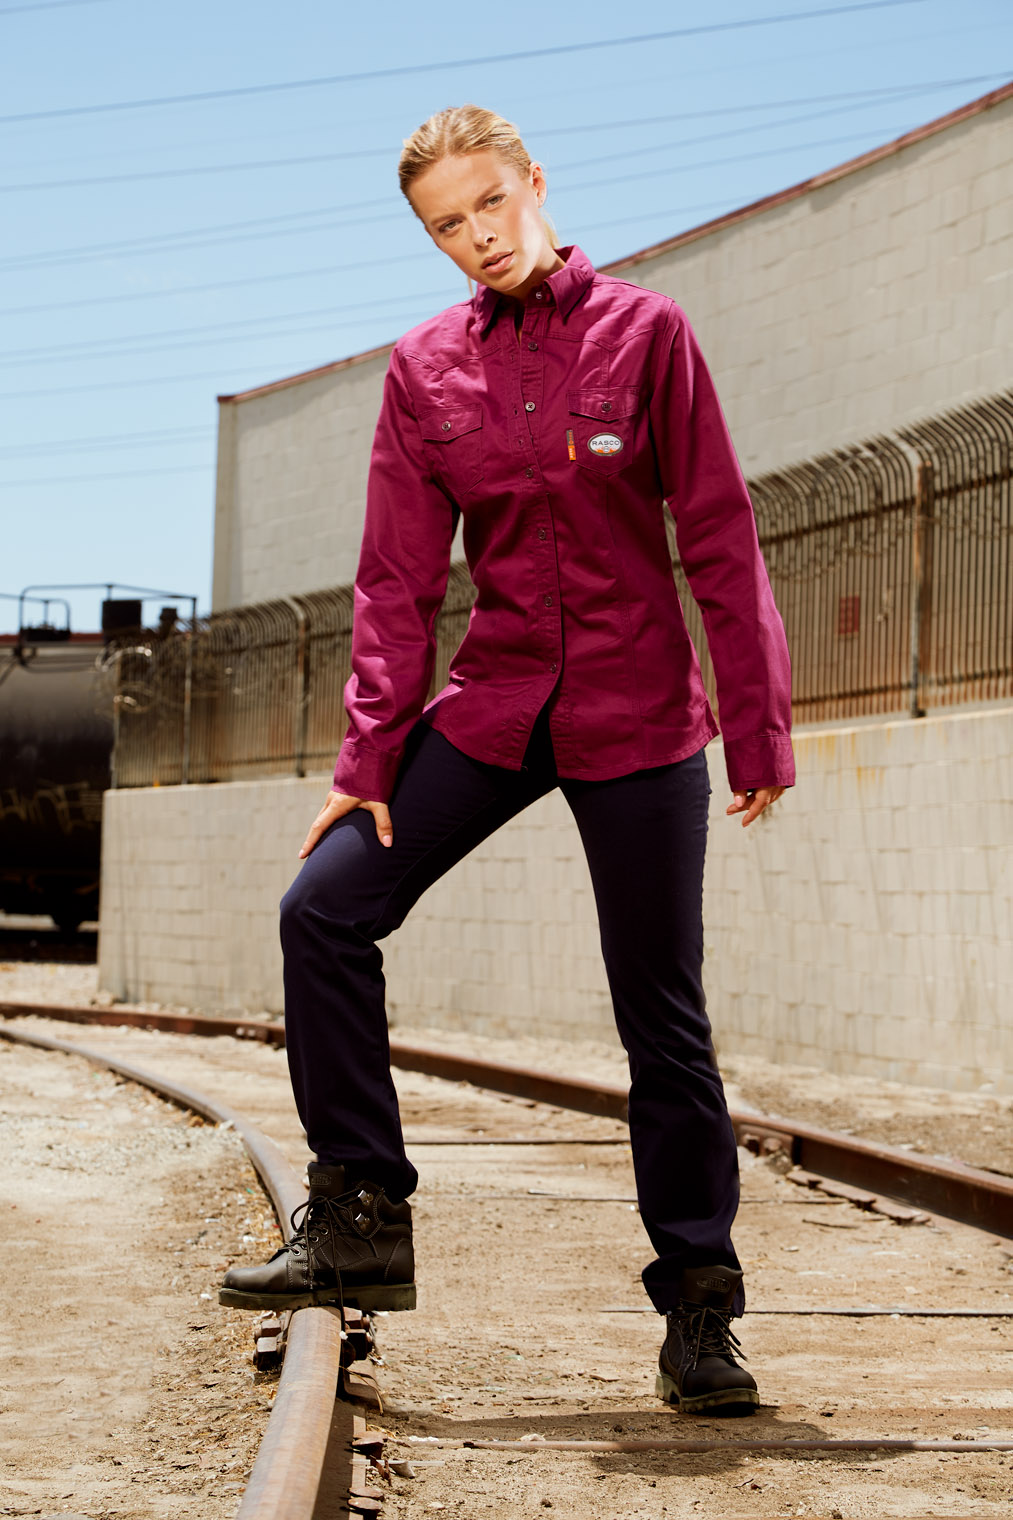 girl in work shirt on rail tracks in workwear advertising campaign